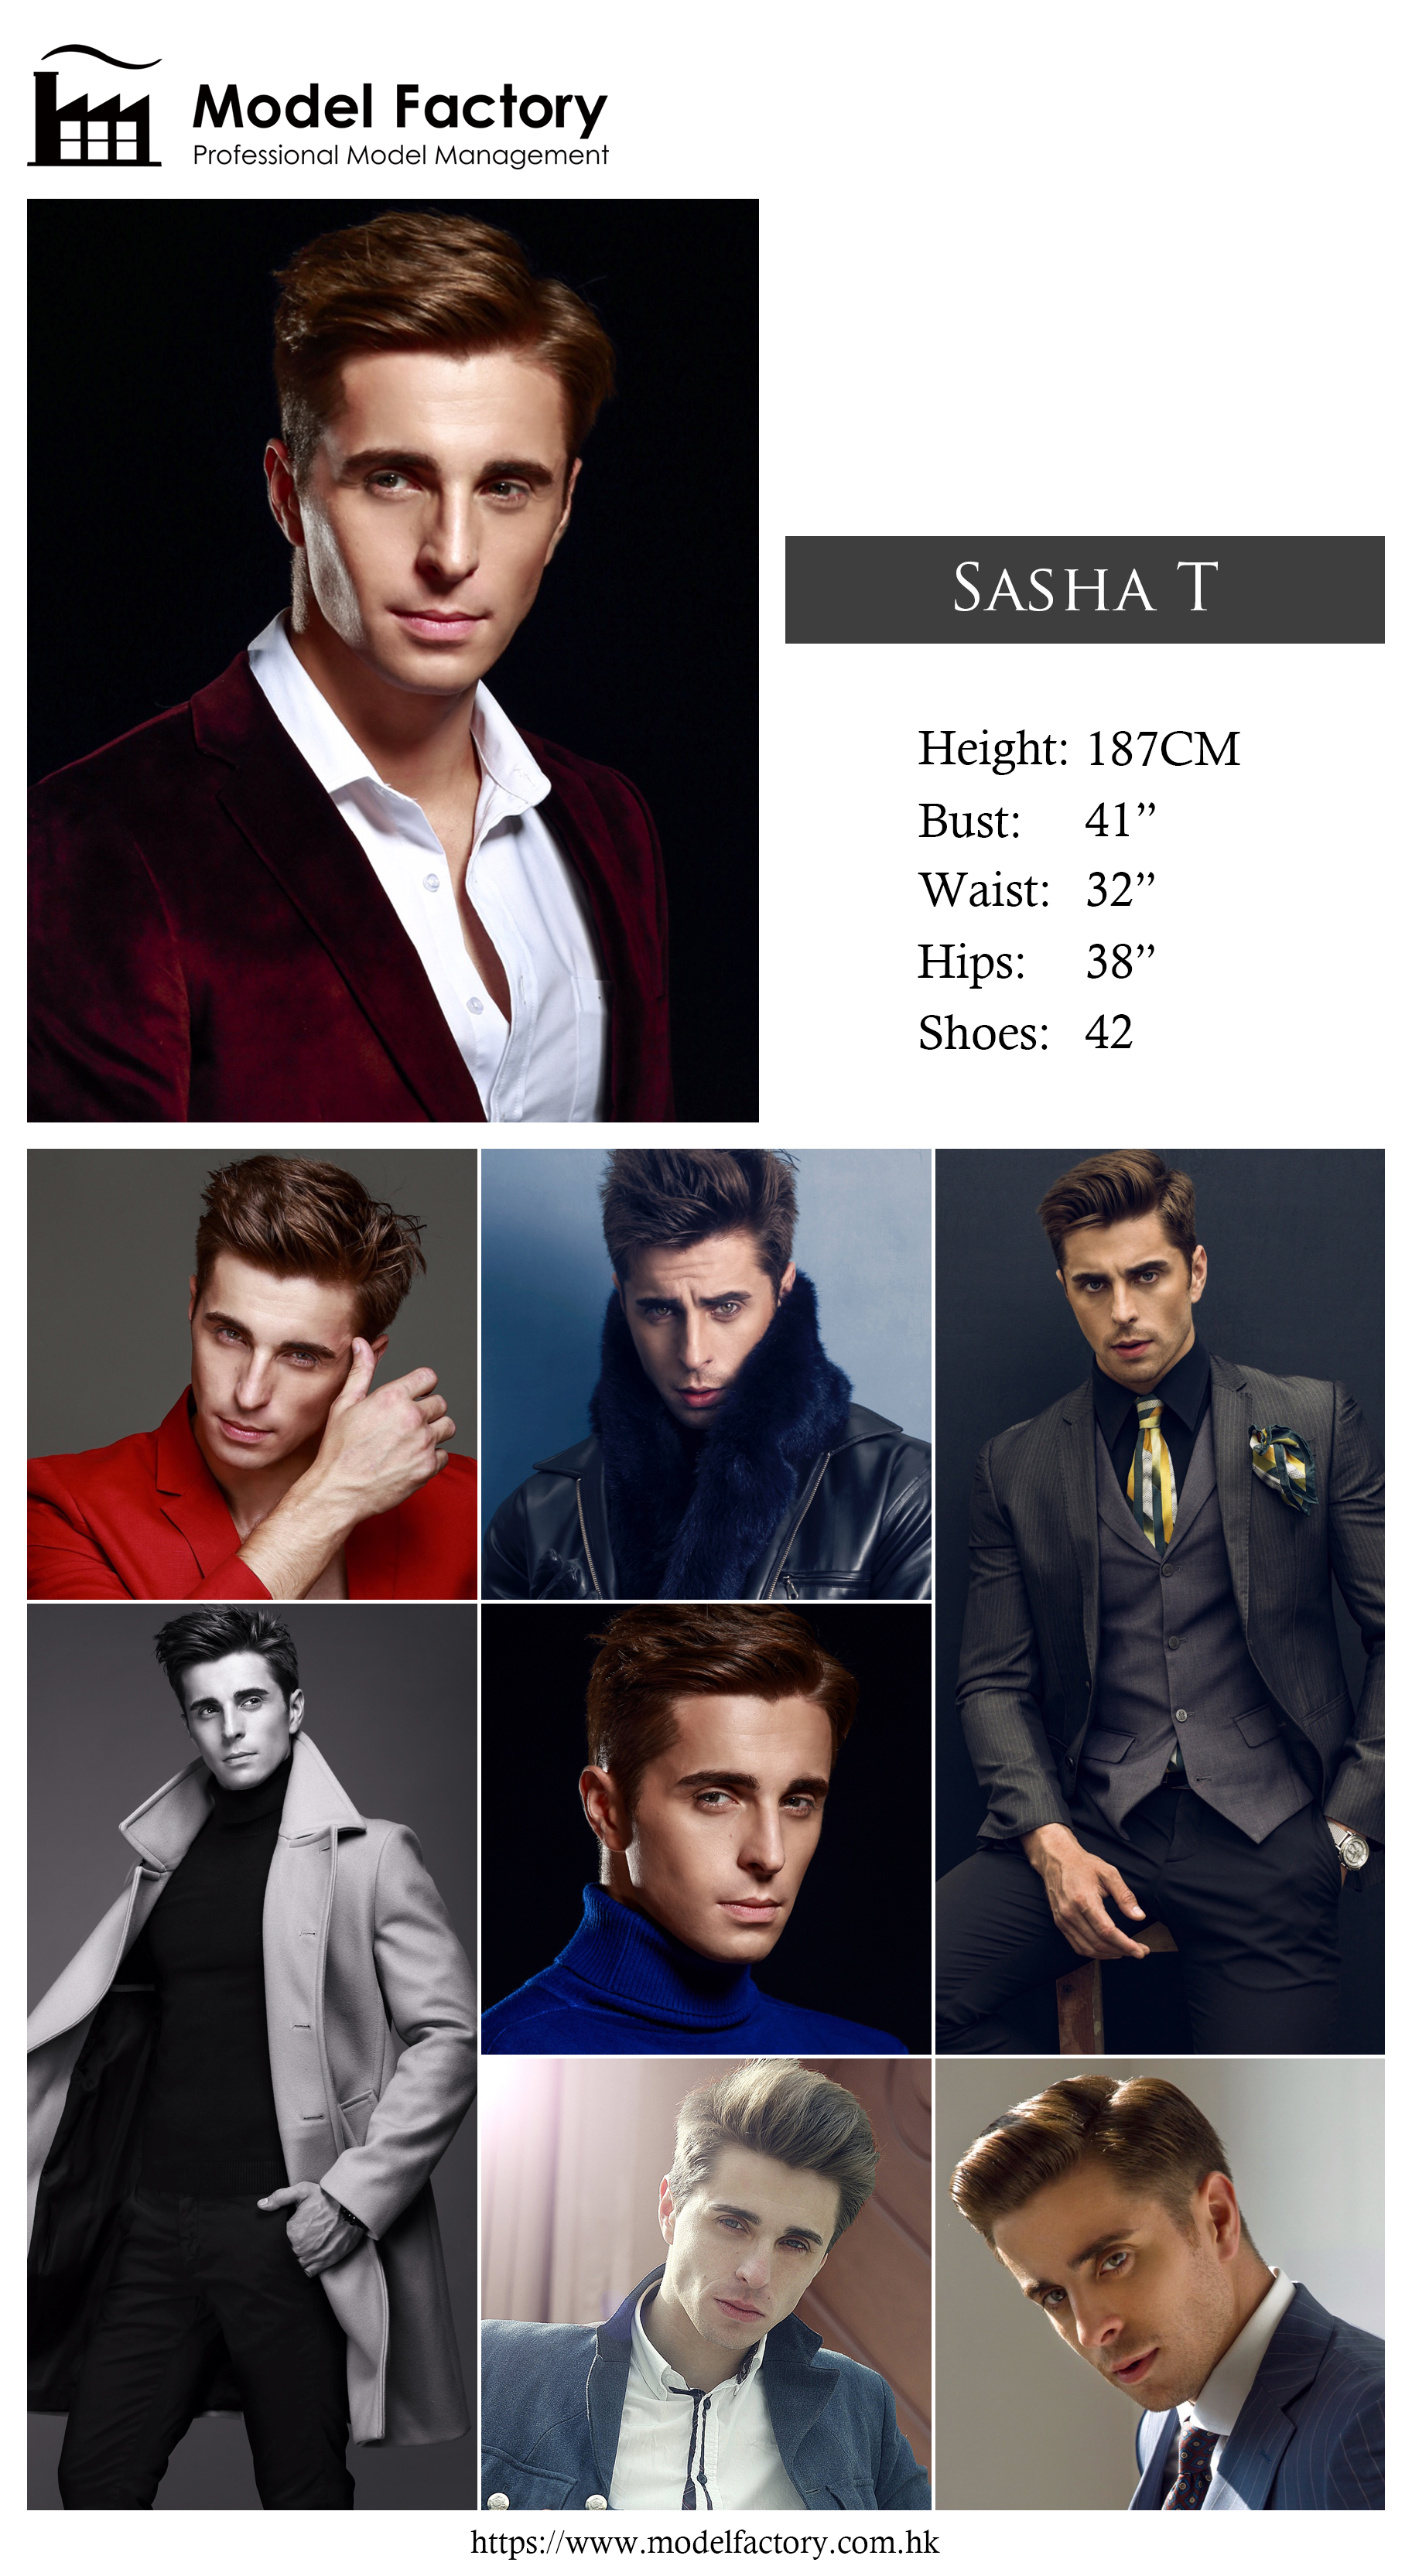 Model Factory Caucasian Male Model SashaT